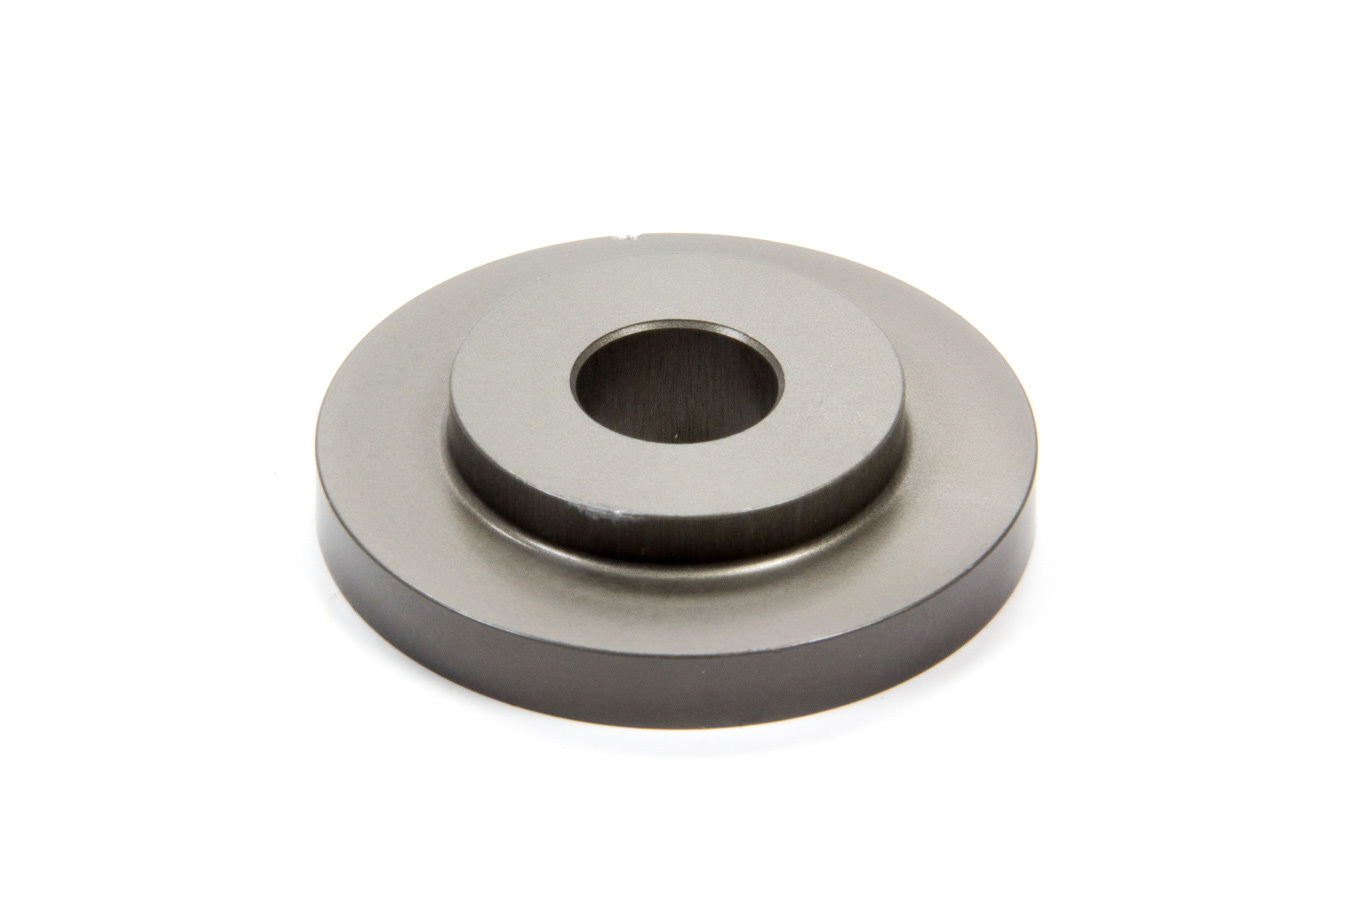 Landrum Springs BC345/16MM Bump Stop Cup, Single Spring, 2.000 in OD, 16 mm Shaft, Aluminum, Gray Anodized, Each